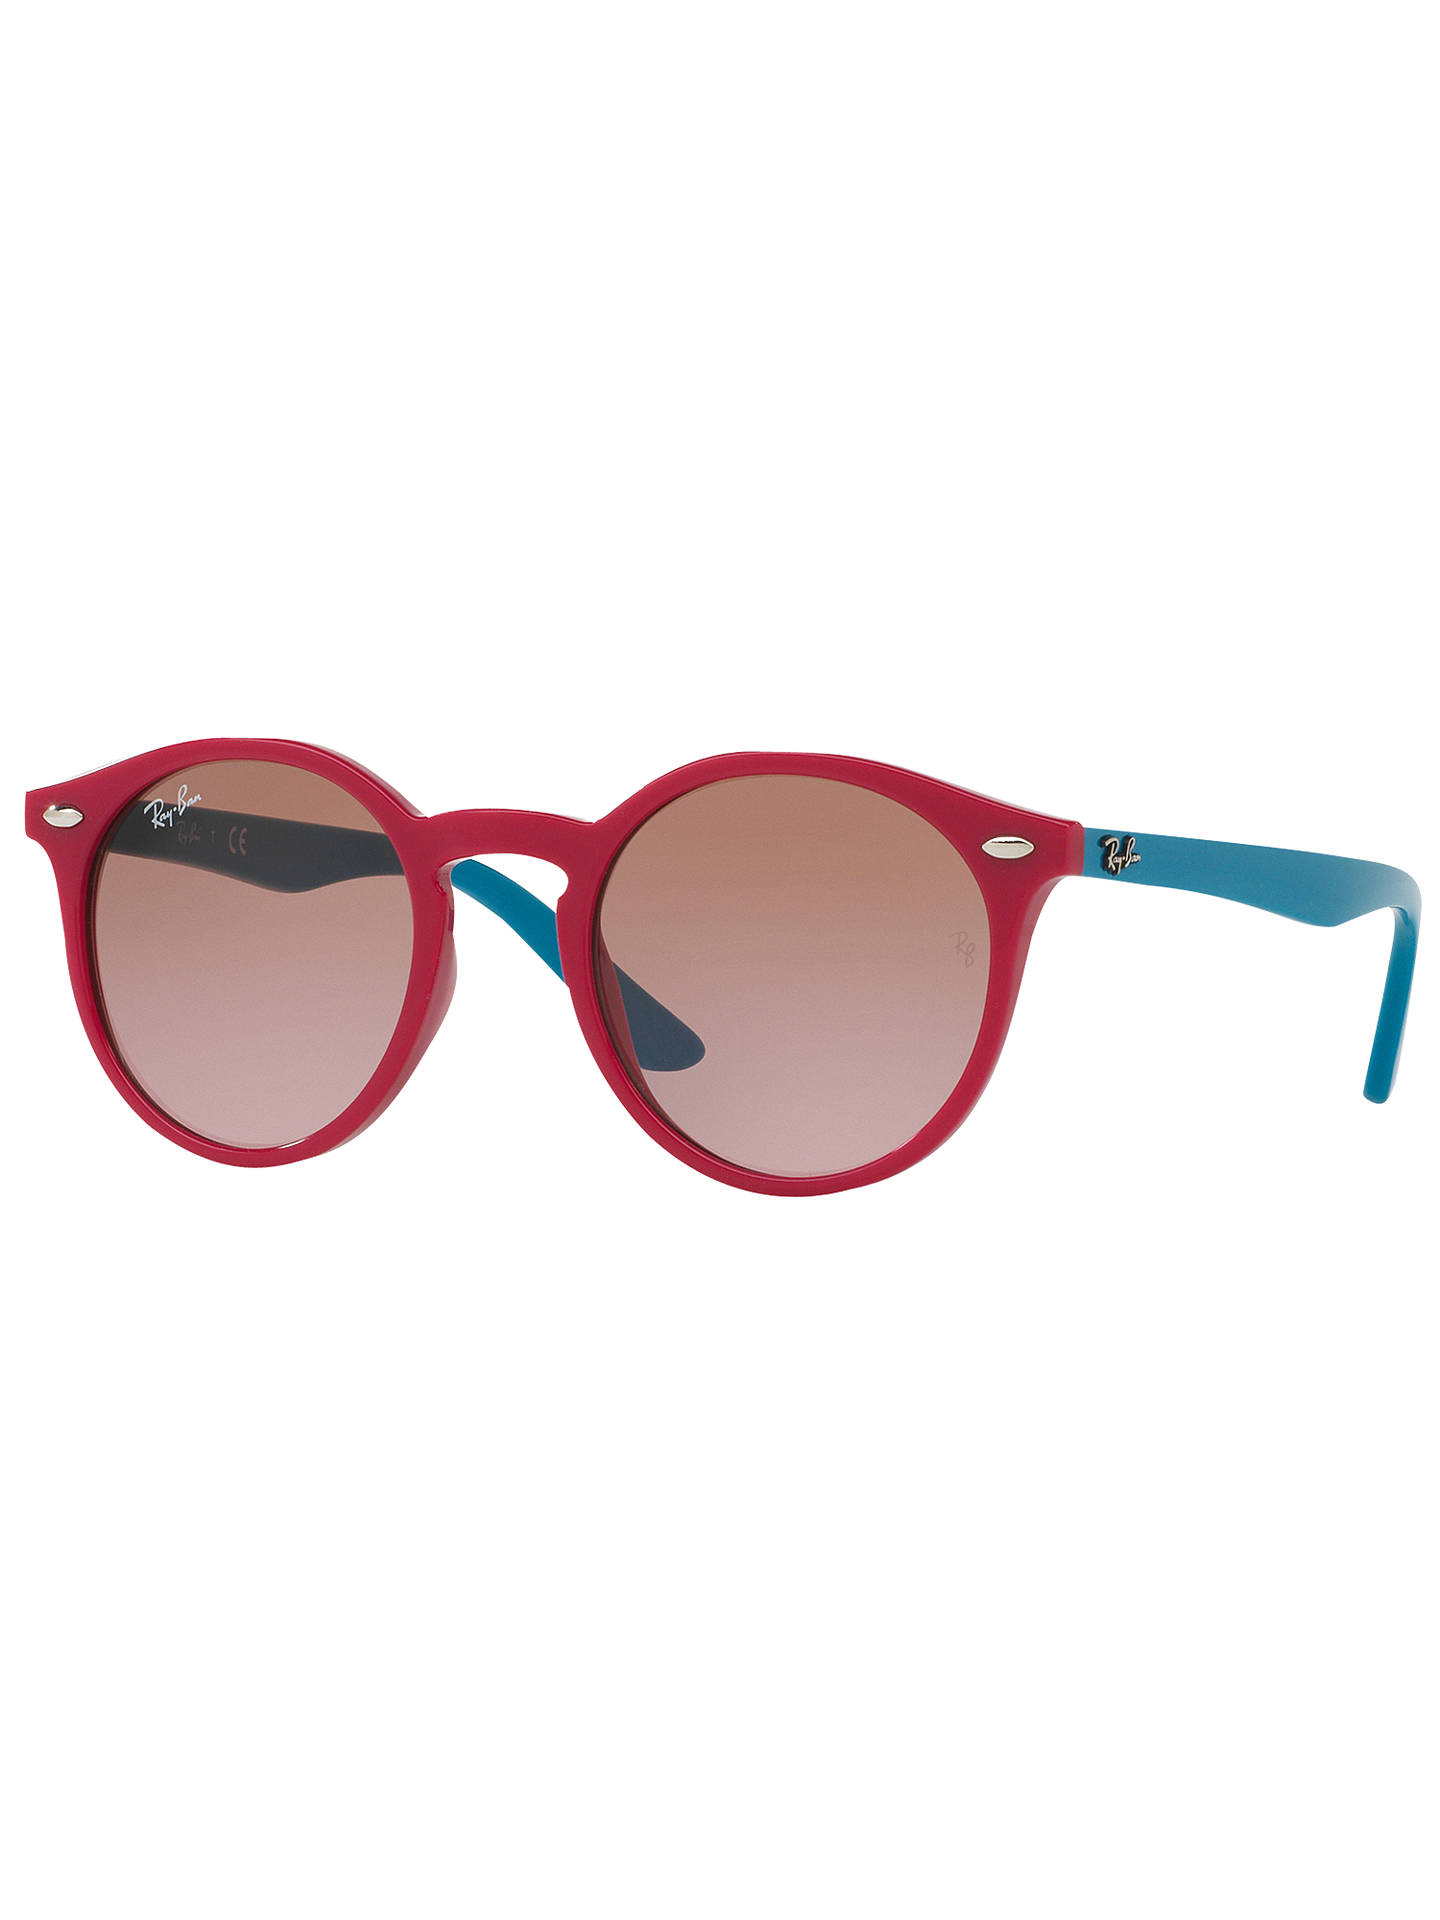 BuyRay-Ban Junior RJ9064S Round Sunglasses, Turquoise/Pink Online at johnlewis.com